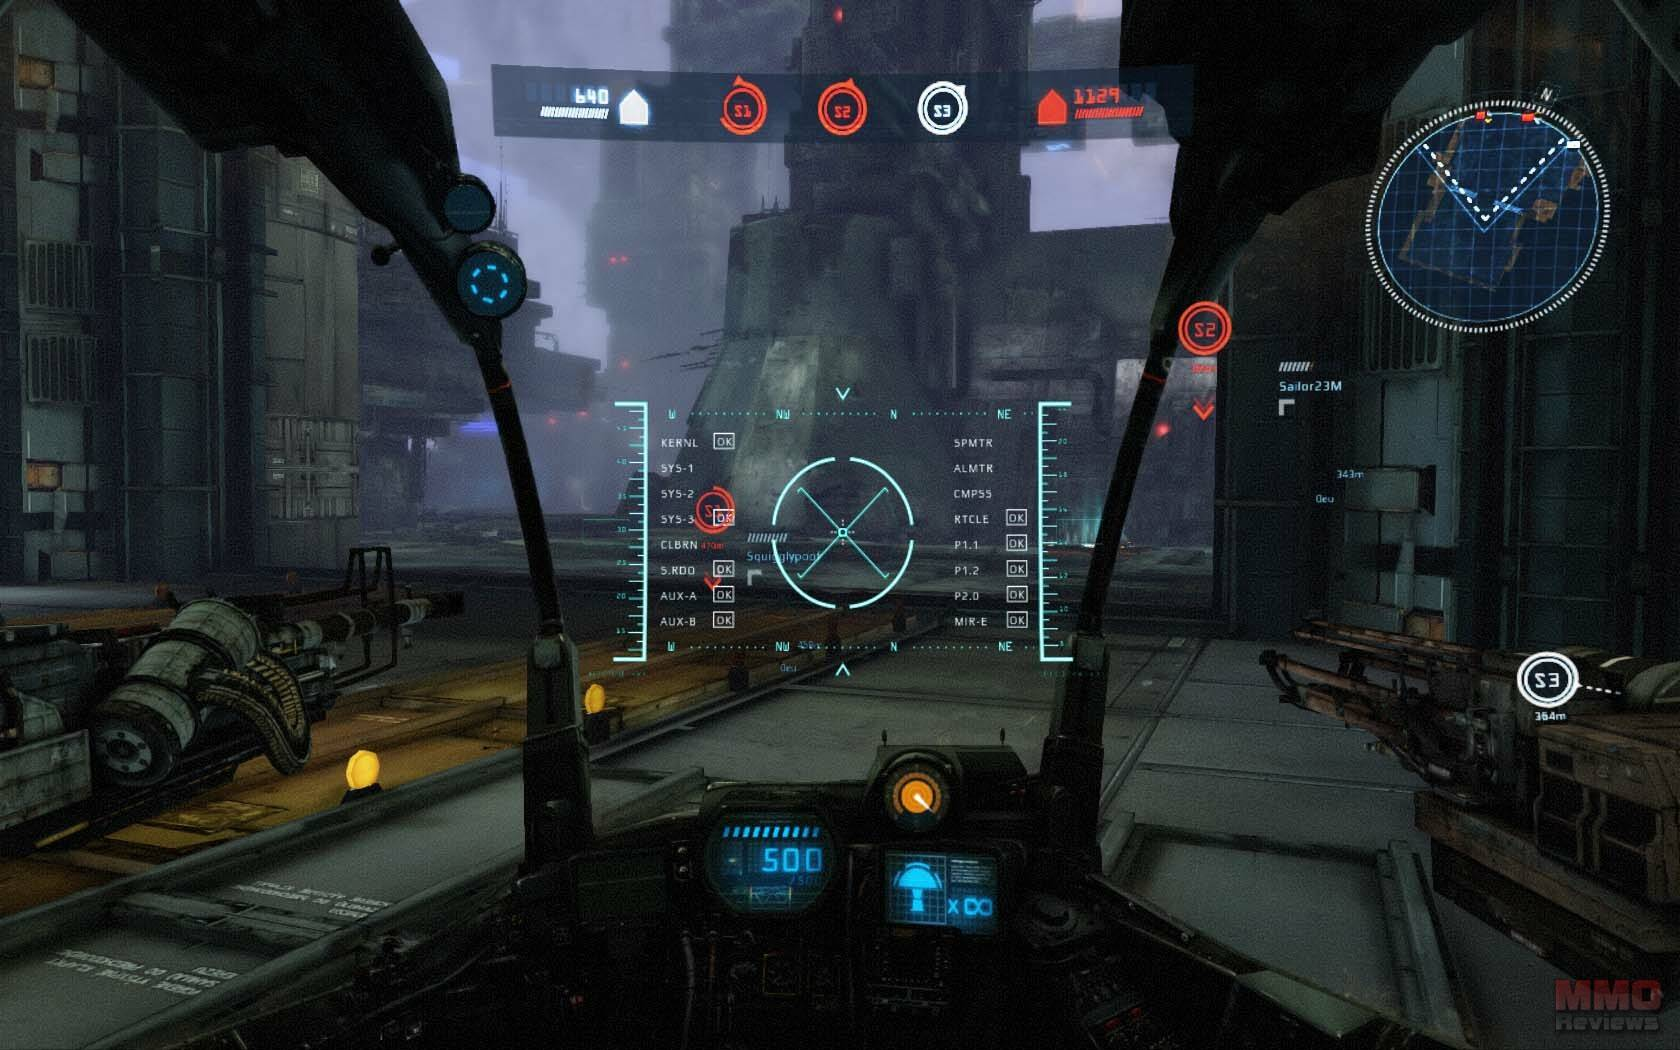 hawken bad matchmaking In multiplayer games , matchmaking is the process of connecting players together for online play sessions elements playlists playlists are automatically-managed streams of online play sessions that players can join and leave at will.